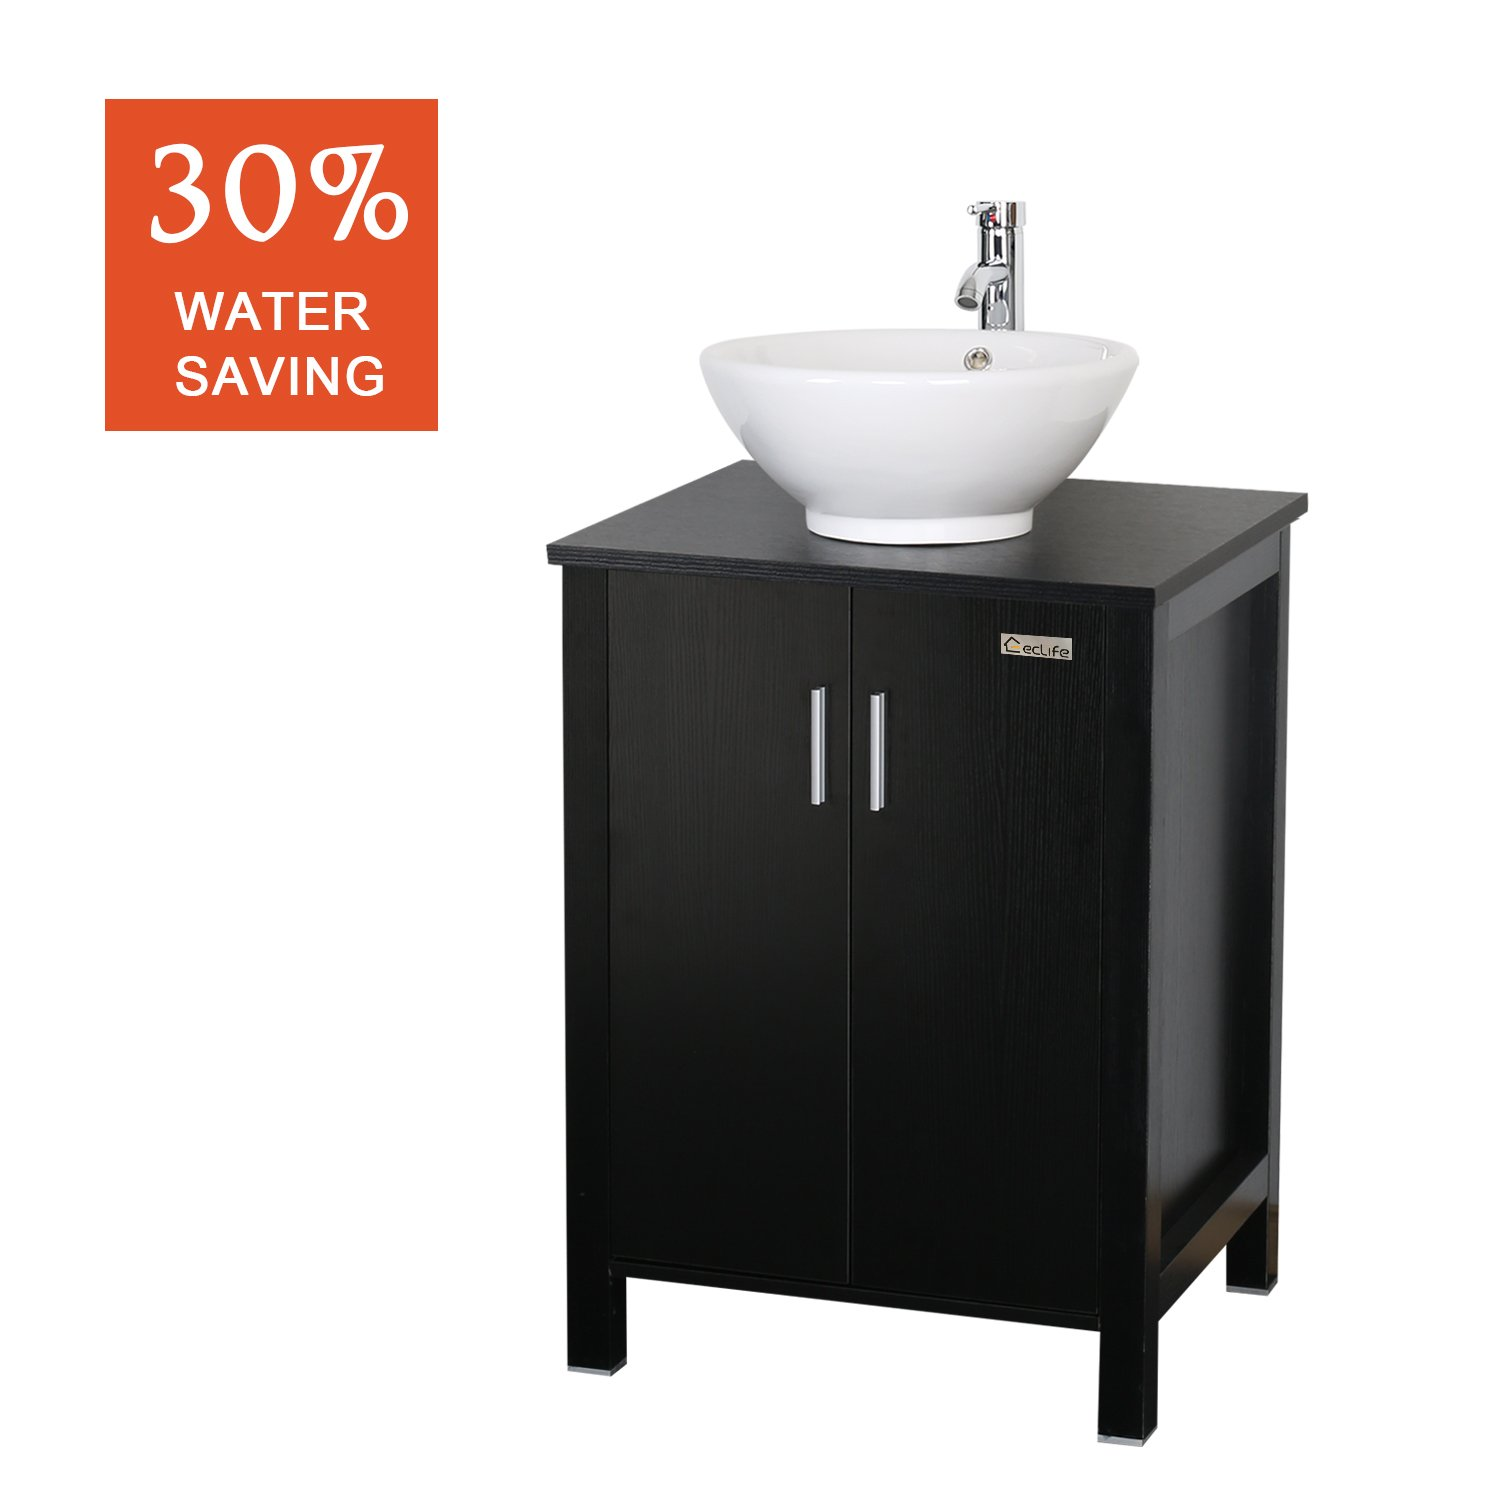 Eclife 24'' Modern Bathroom Vanity And Sink Combo (Updates) Stand Cabinet  And White Round Ceramic Vessel Sink With Overflow And Chrome Bathroom Solid  Brass